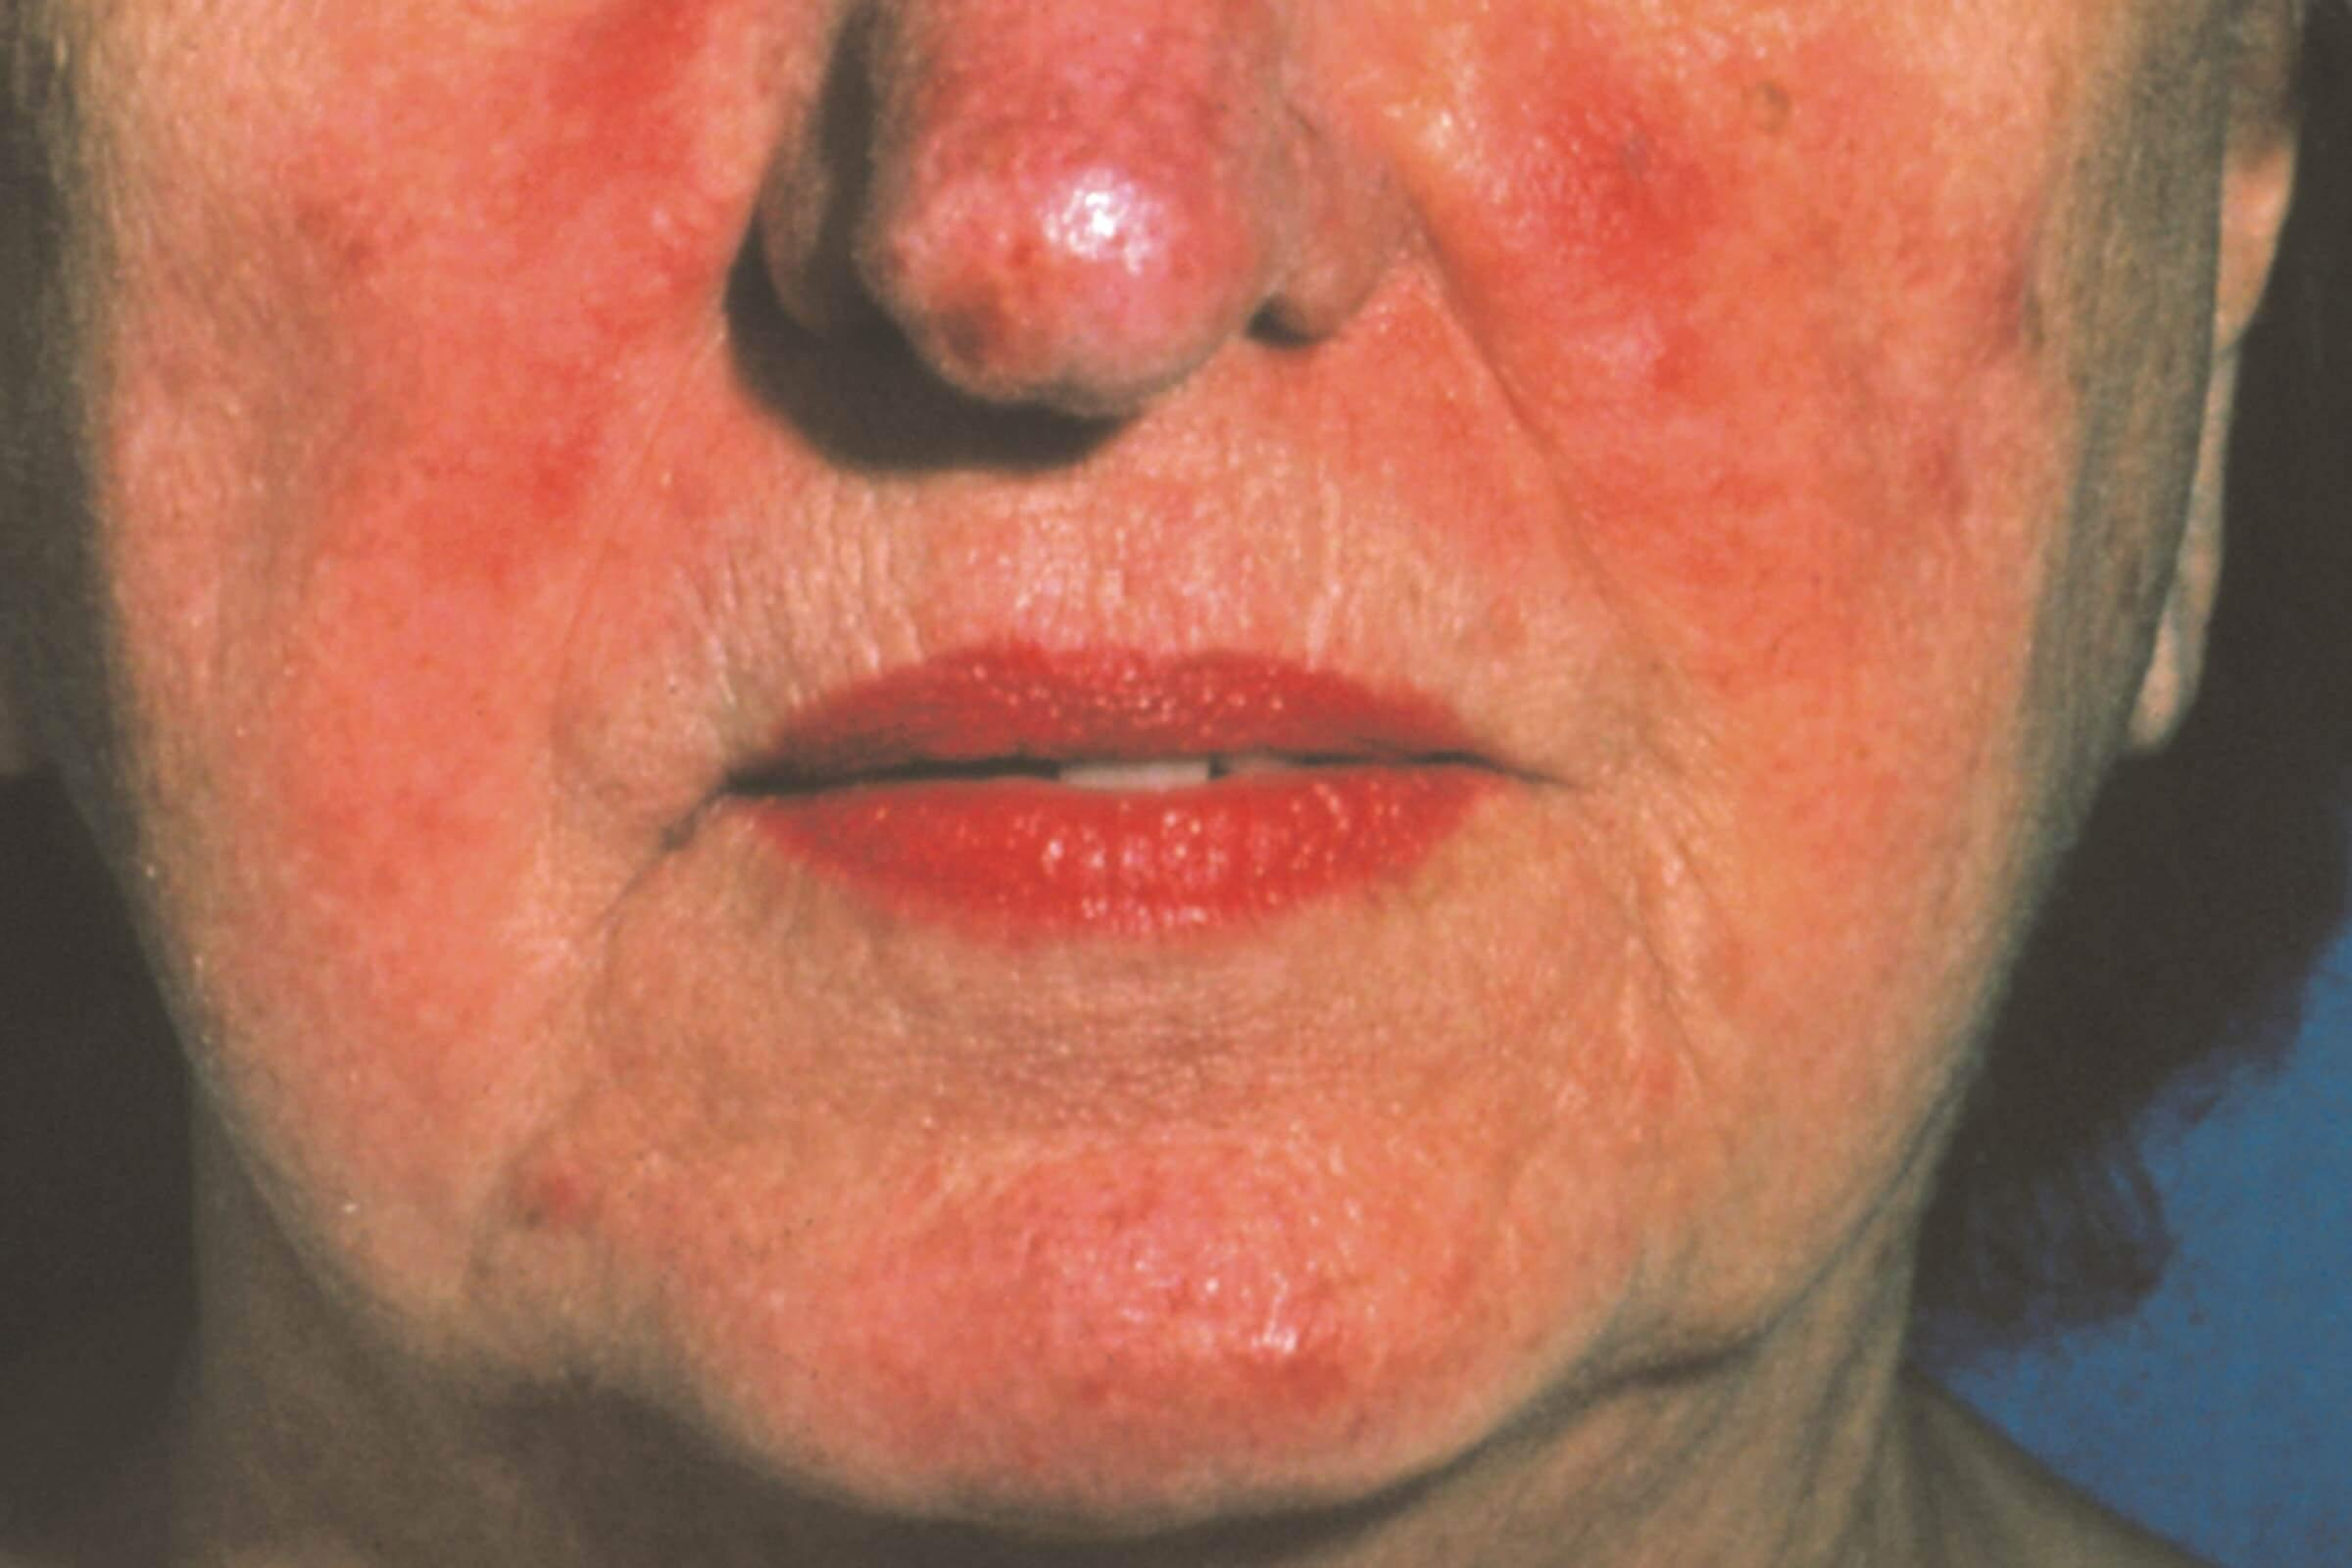 Can A Humidifier Help Your Skin? Rosacea advice from